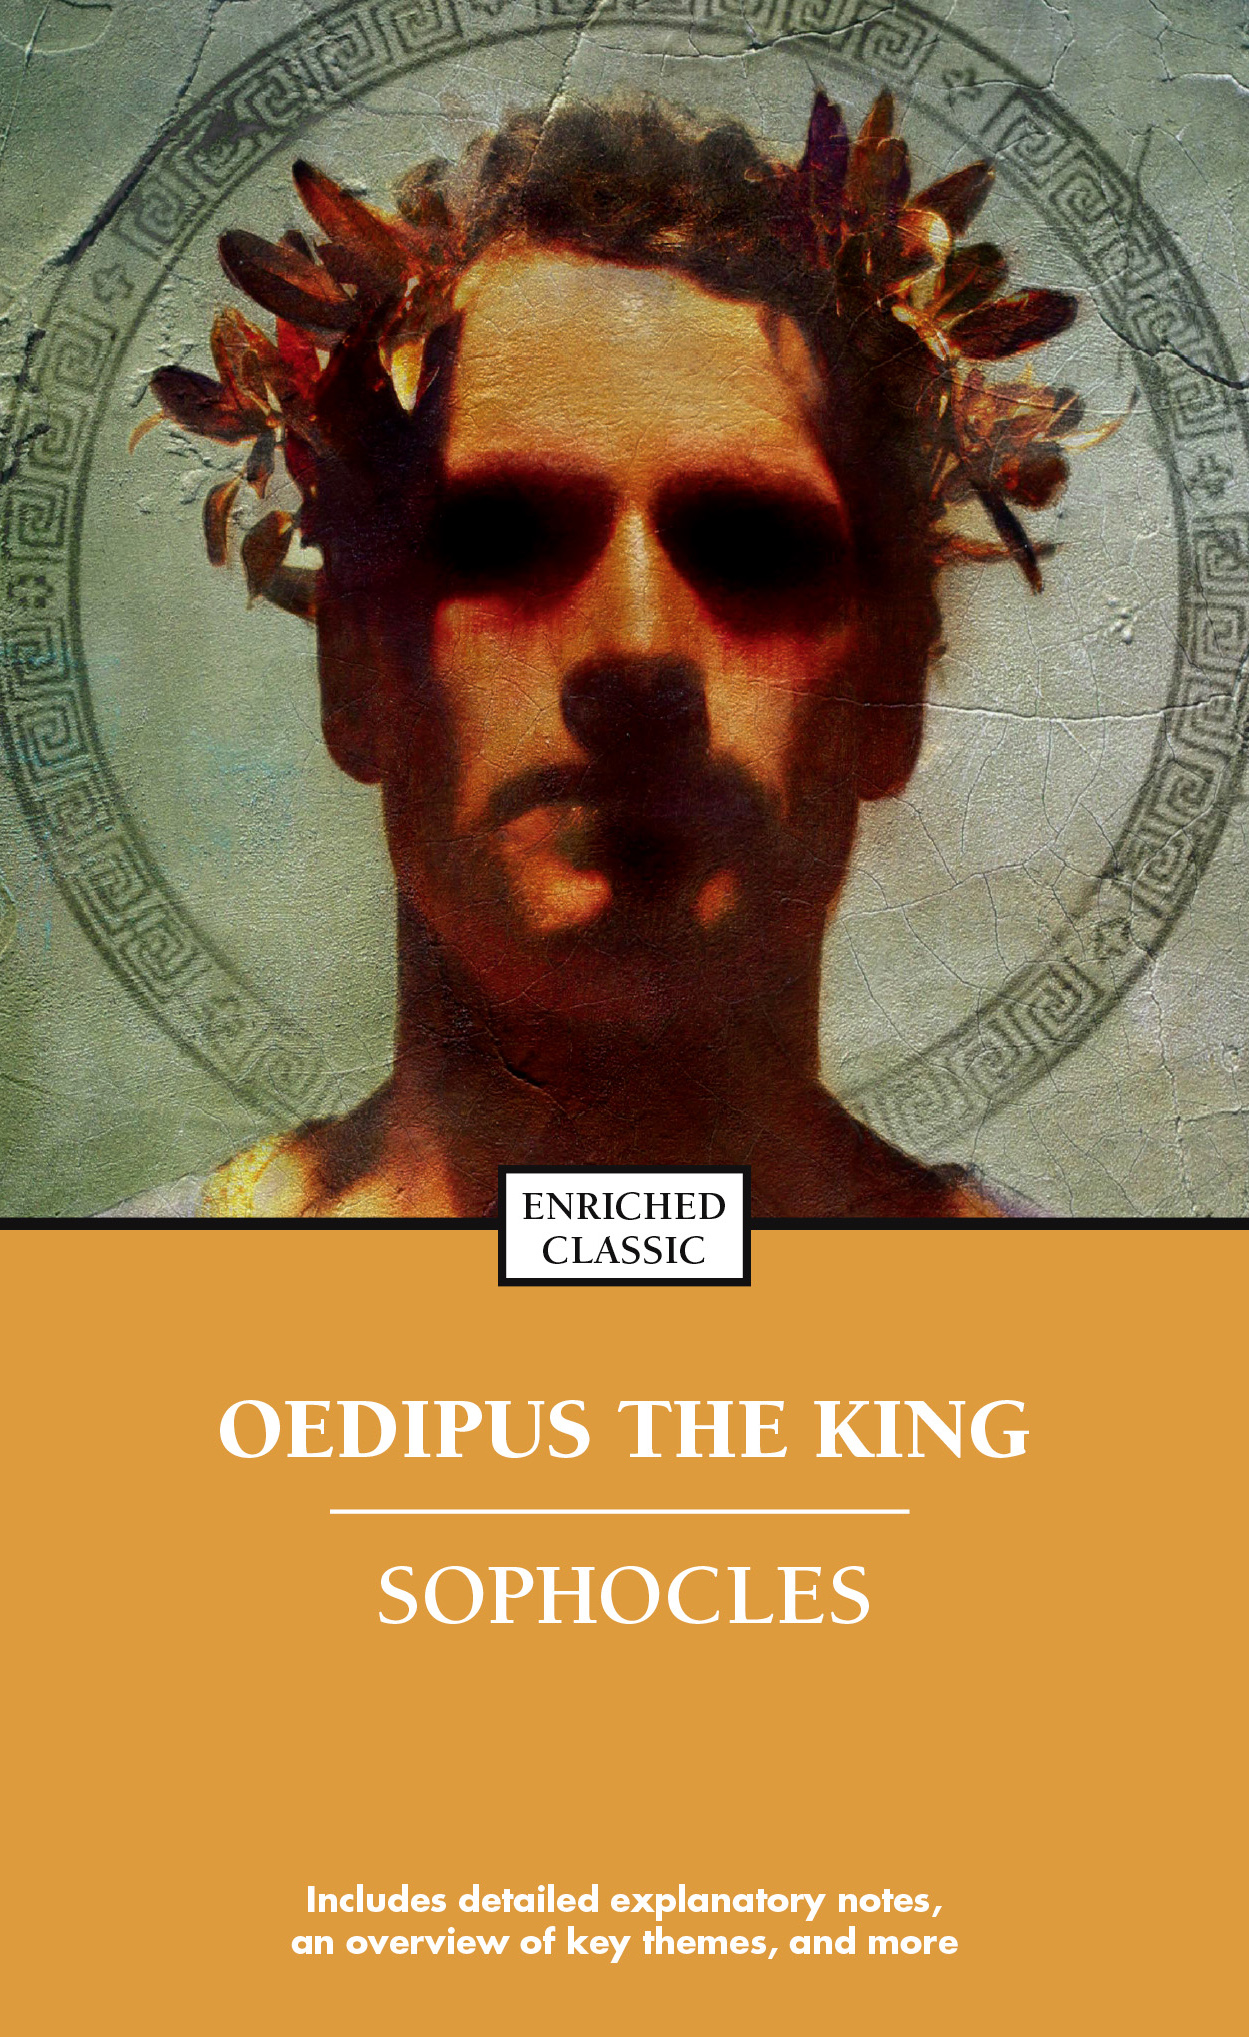 an analysis of the riddle of man in oedipus the king a play by sophocles Characterized him as a tragic man the sphinx posed the following riddle to all oedipus the king by sophocles is more than just a plain tragedy this play is.